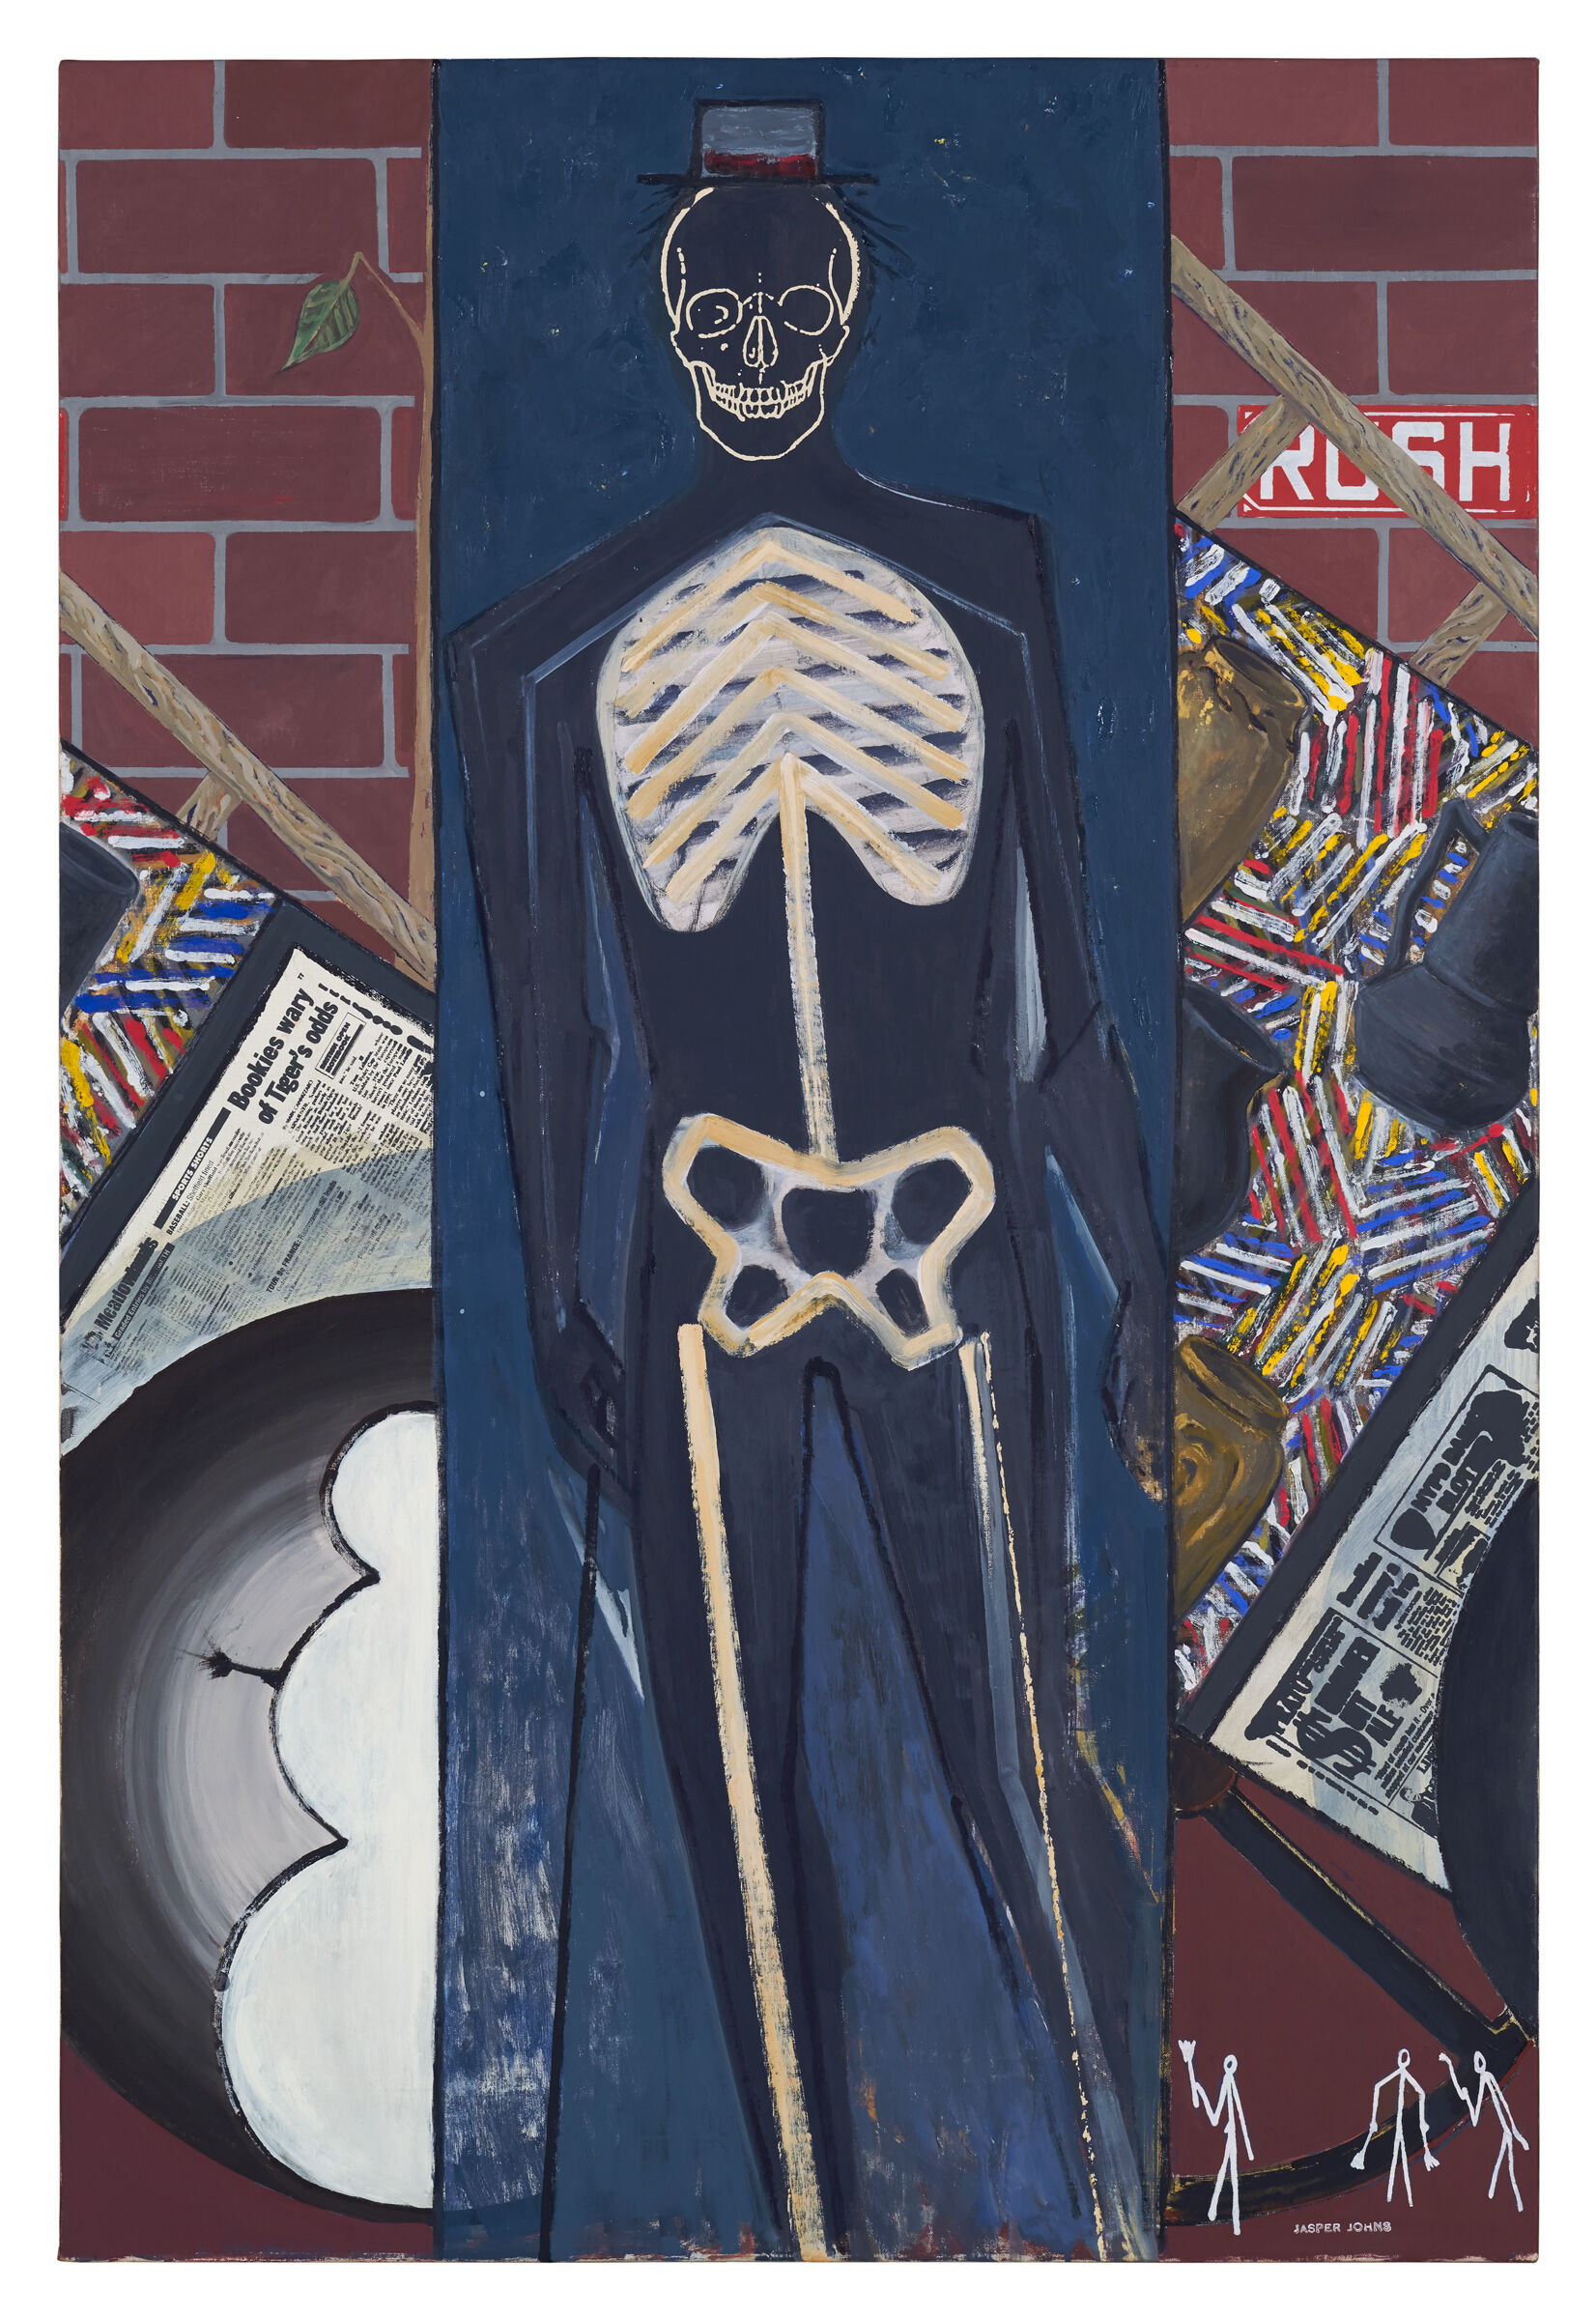 Skeleton wearing a hat against a blue vertical panel that runs down the center of the composition, with brick walls on either side and assorted objects and symbols in front, including ladders, a painting, newspapers, and stick figures.